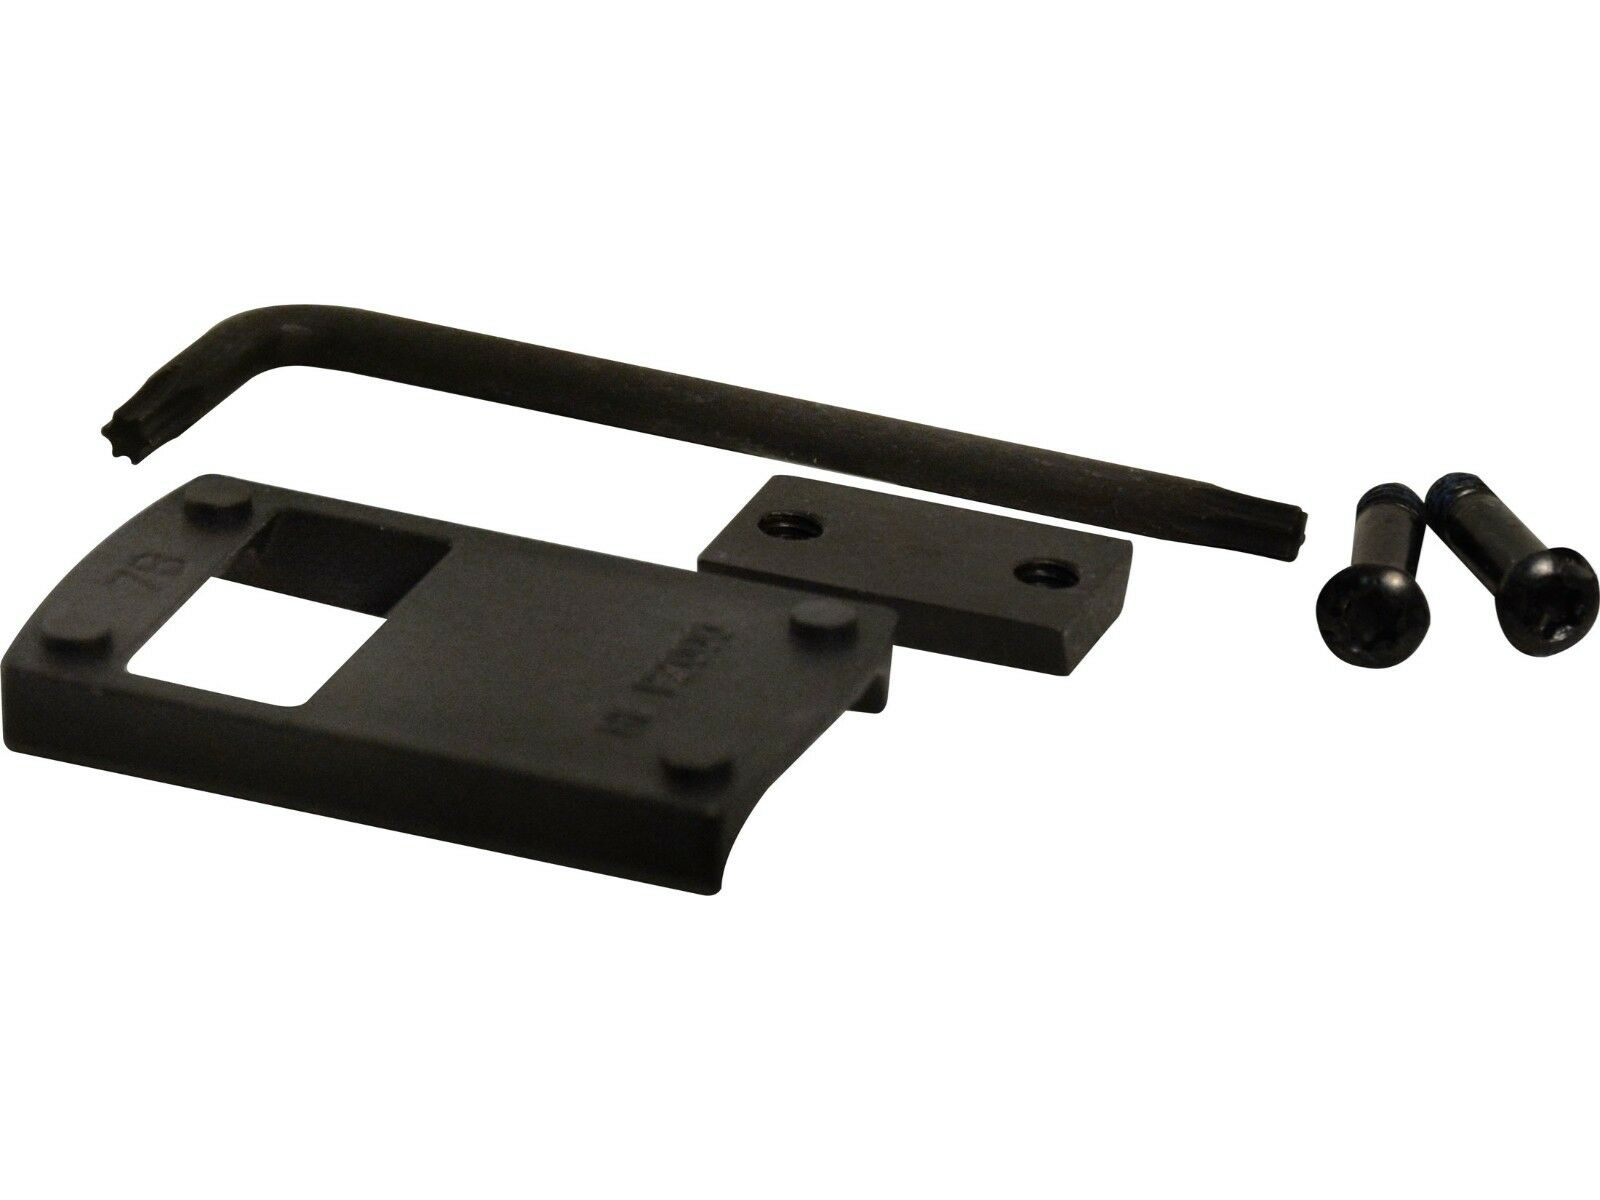 Leupold DeltaPoint Pro Dovetail Mount 170905